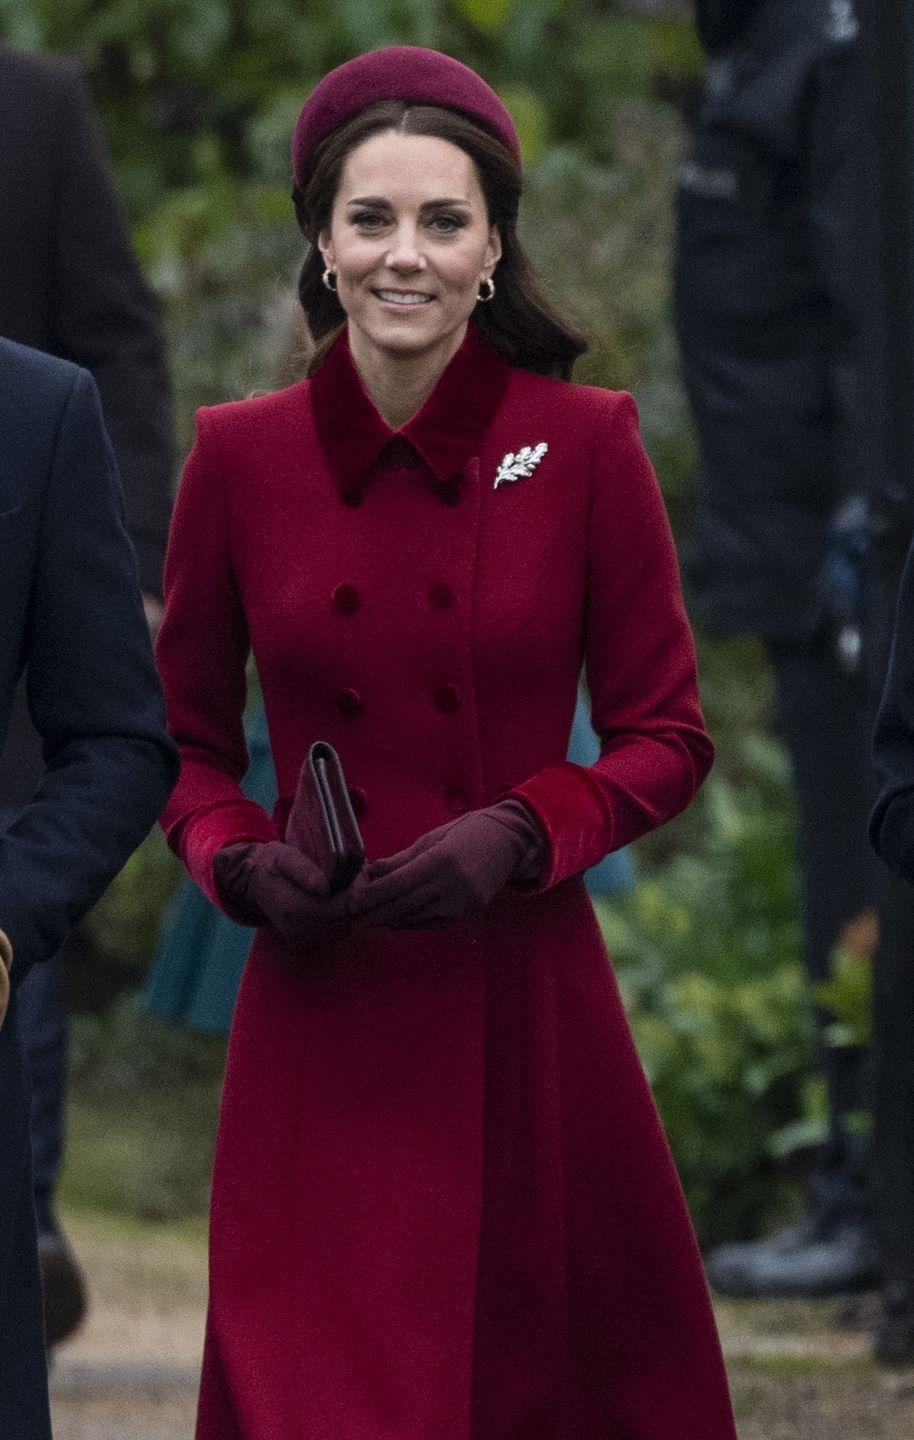 <p>Burgundy must be a royal fave, because Kate wore this merlot coat and matching hat for Christmas in Sandringham. P.S. Those gloves.</p>